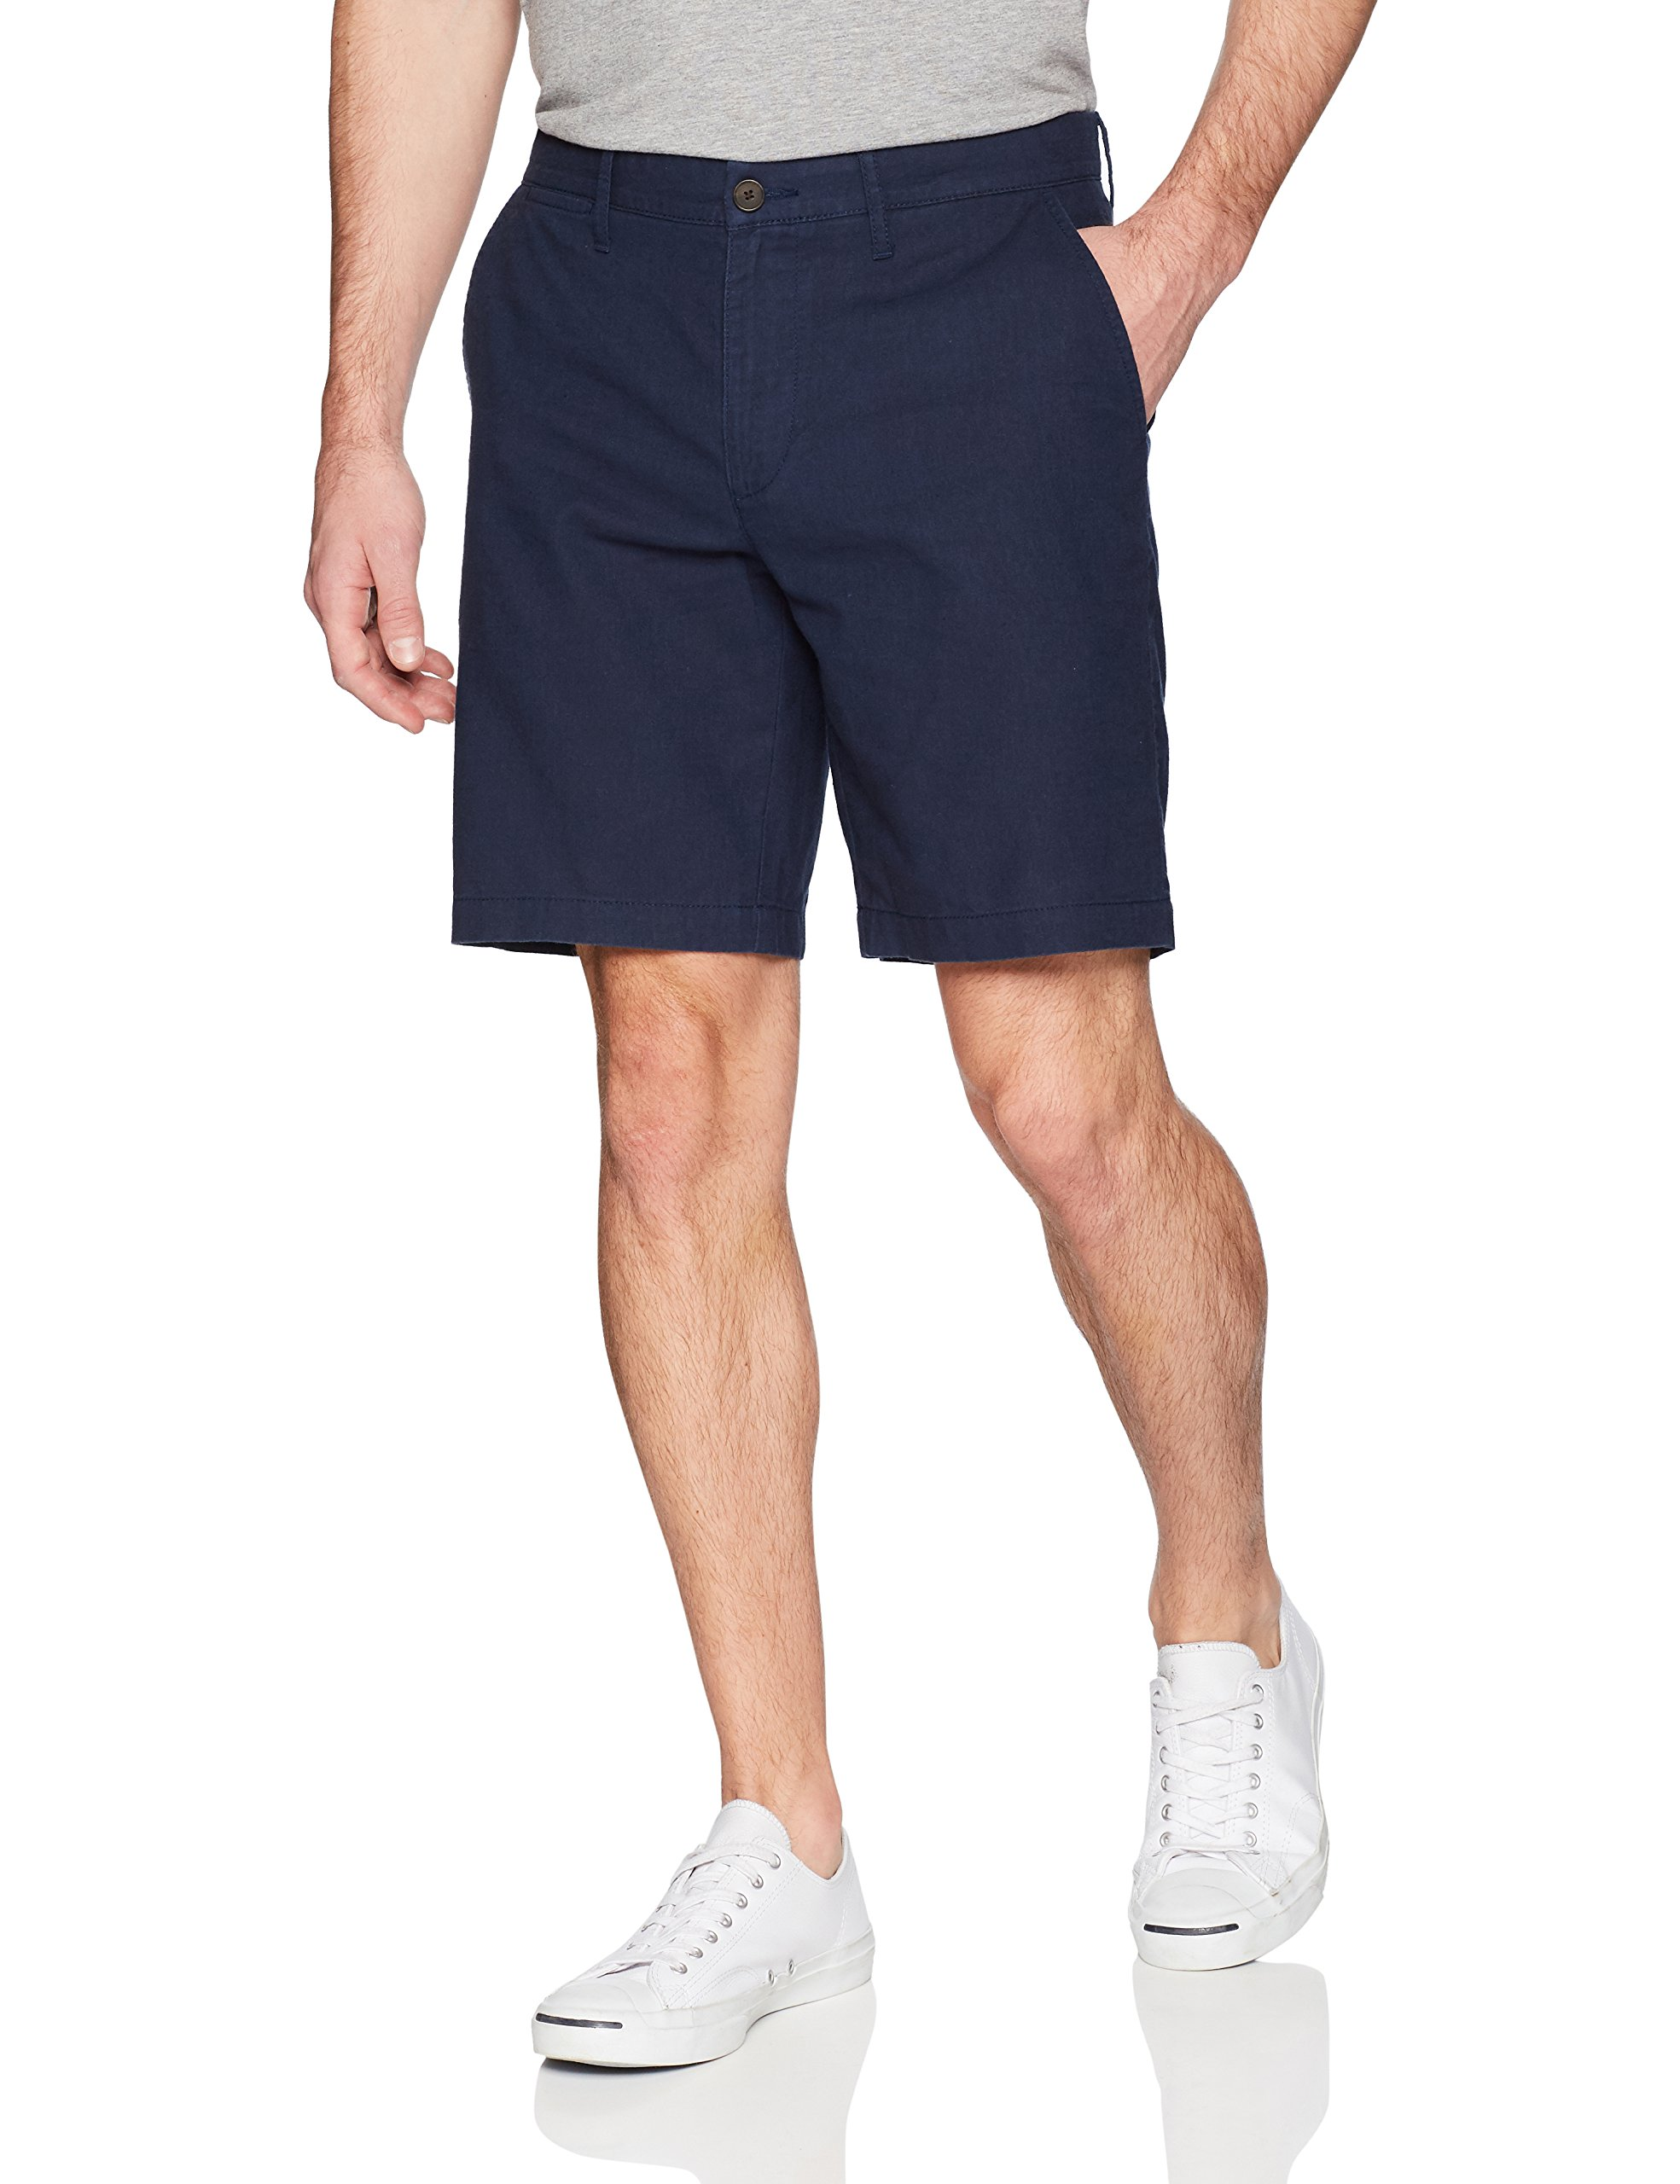 Goodthreads Men's 9'' Inseam Linen Cotton Short, Navy, 32